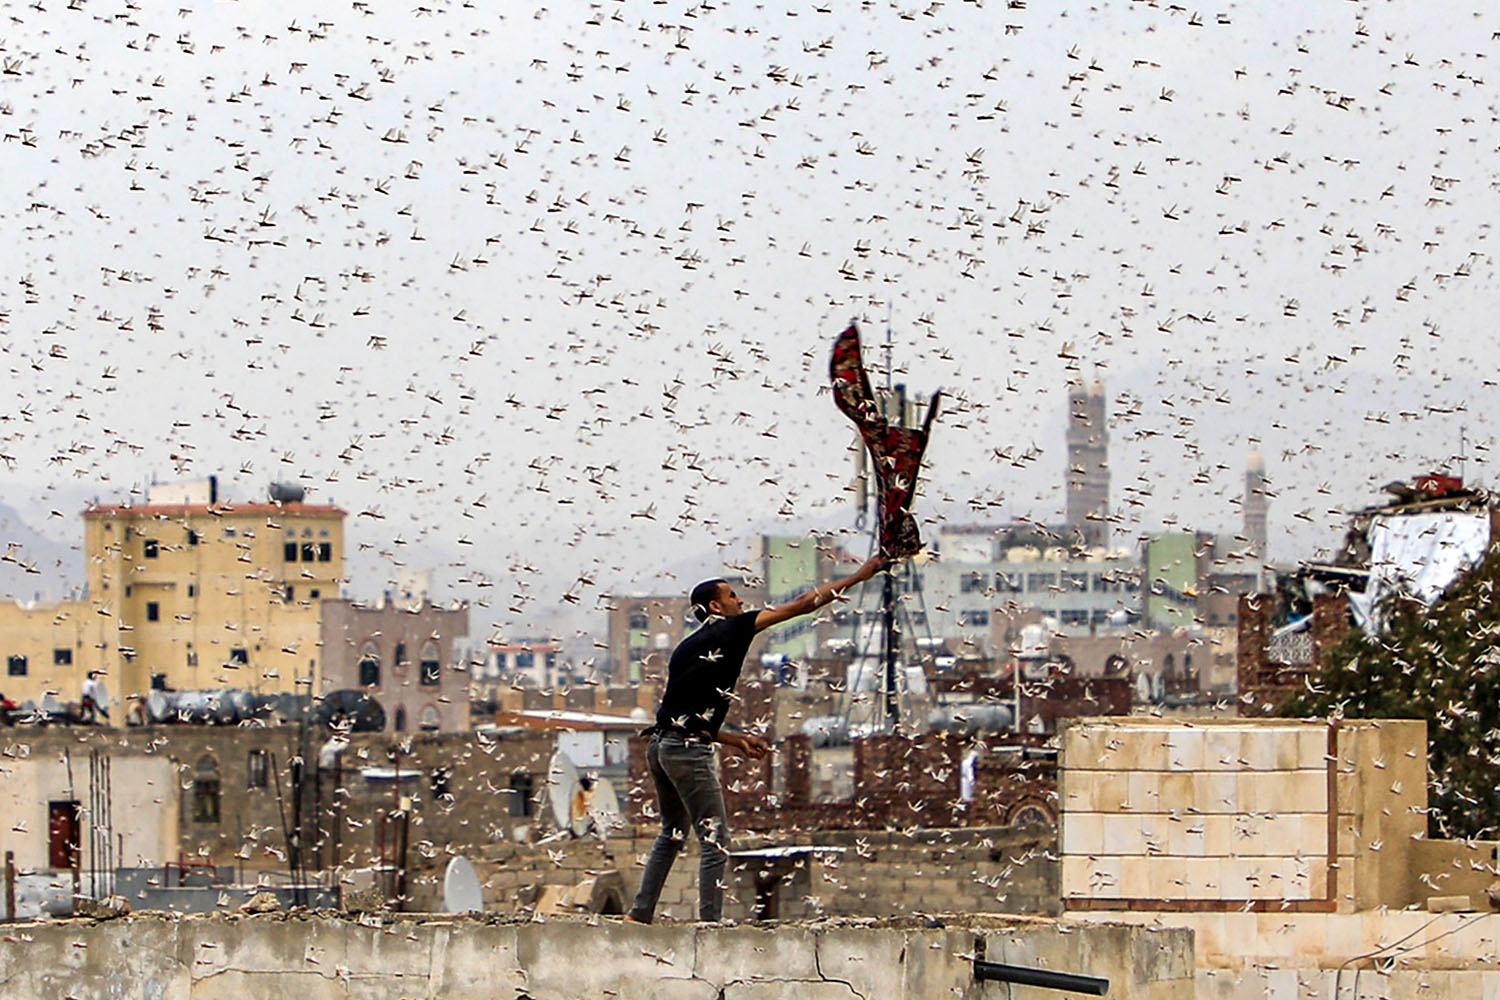 A man tries to catch locusts while standing on a rooftop as the bugs swarm over the Huthi rebel-held Yemeni capital Sanaa on July 28. MOHAMMED HUWAIS/AFP via Getty Images